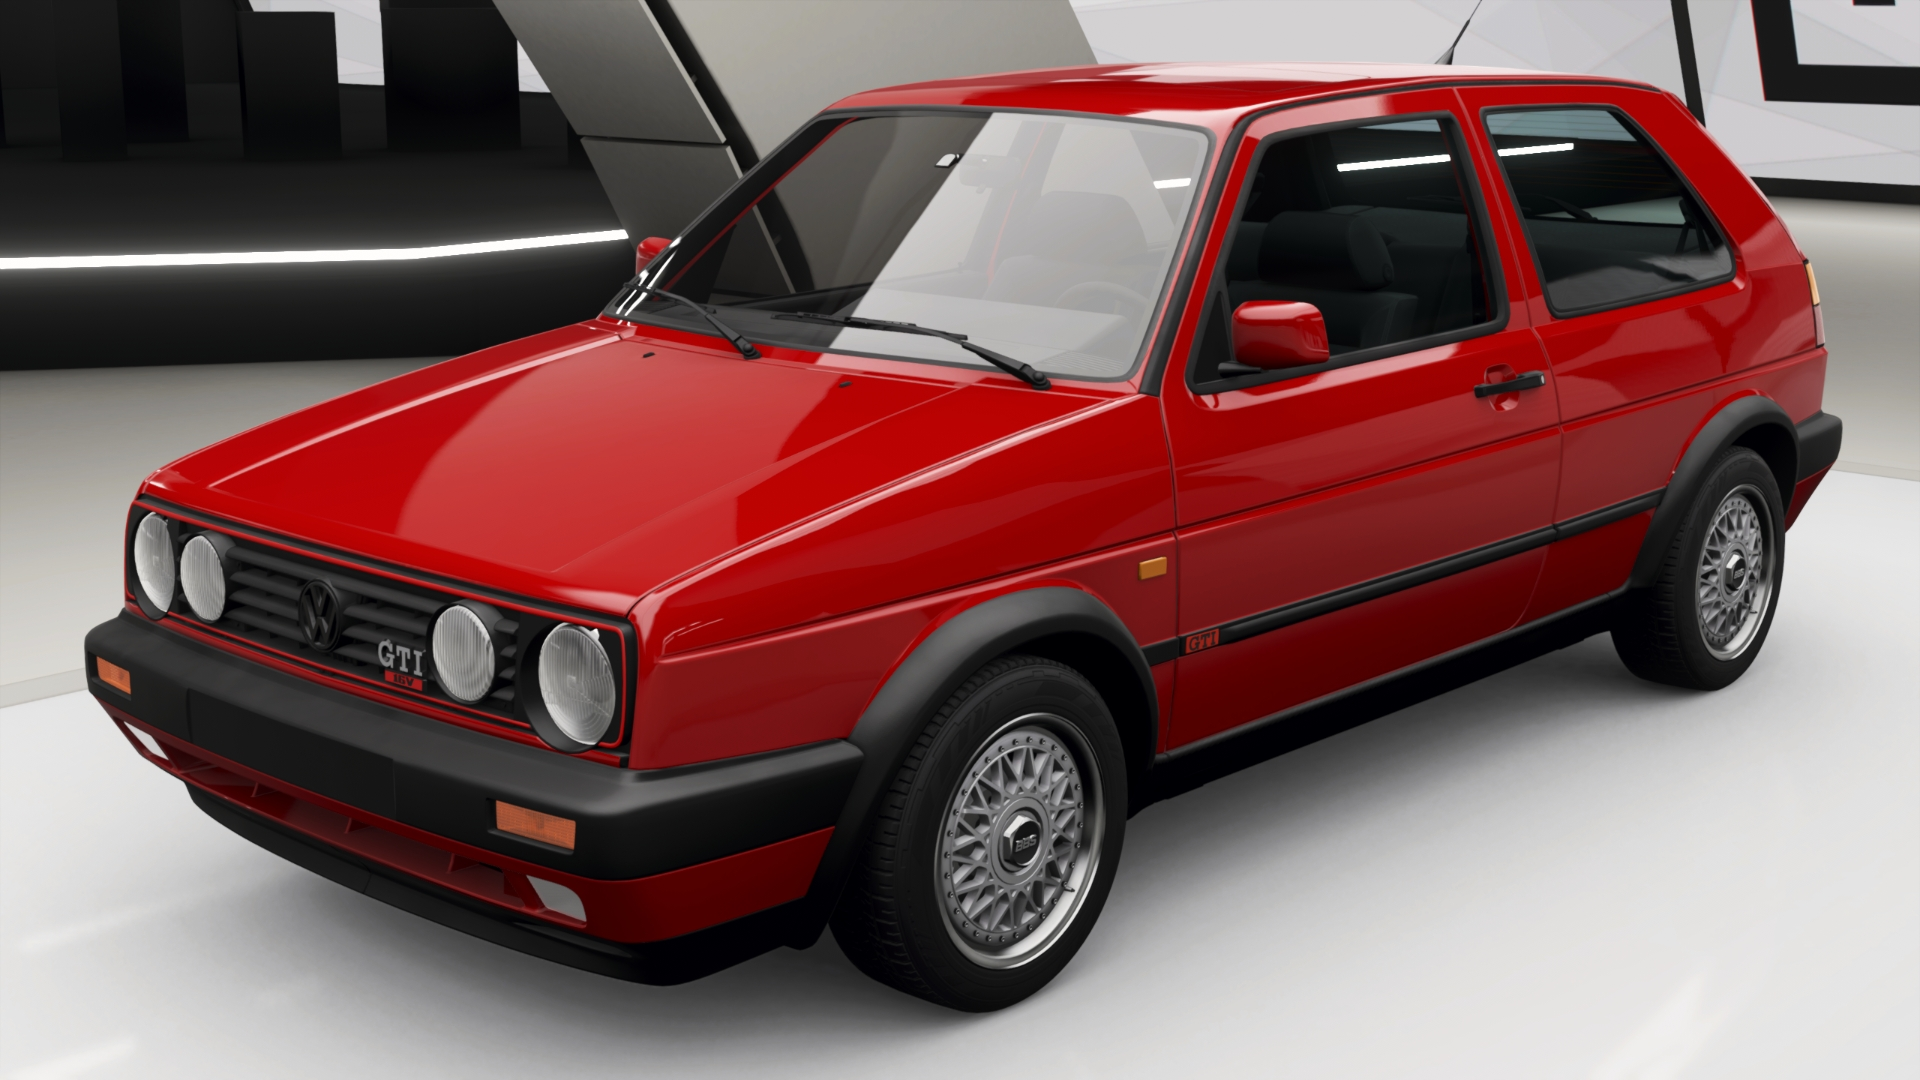 volkswagen golf gti 16v mk2 forza motorsport wiki. Black Bedroom Furniture Sets. Home Design Ideas